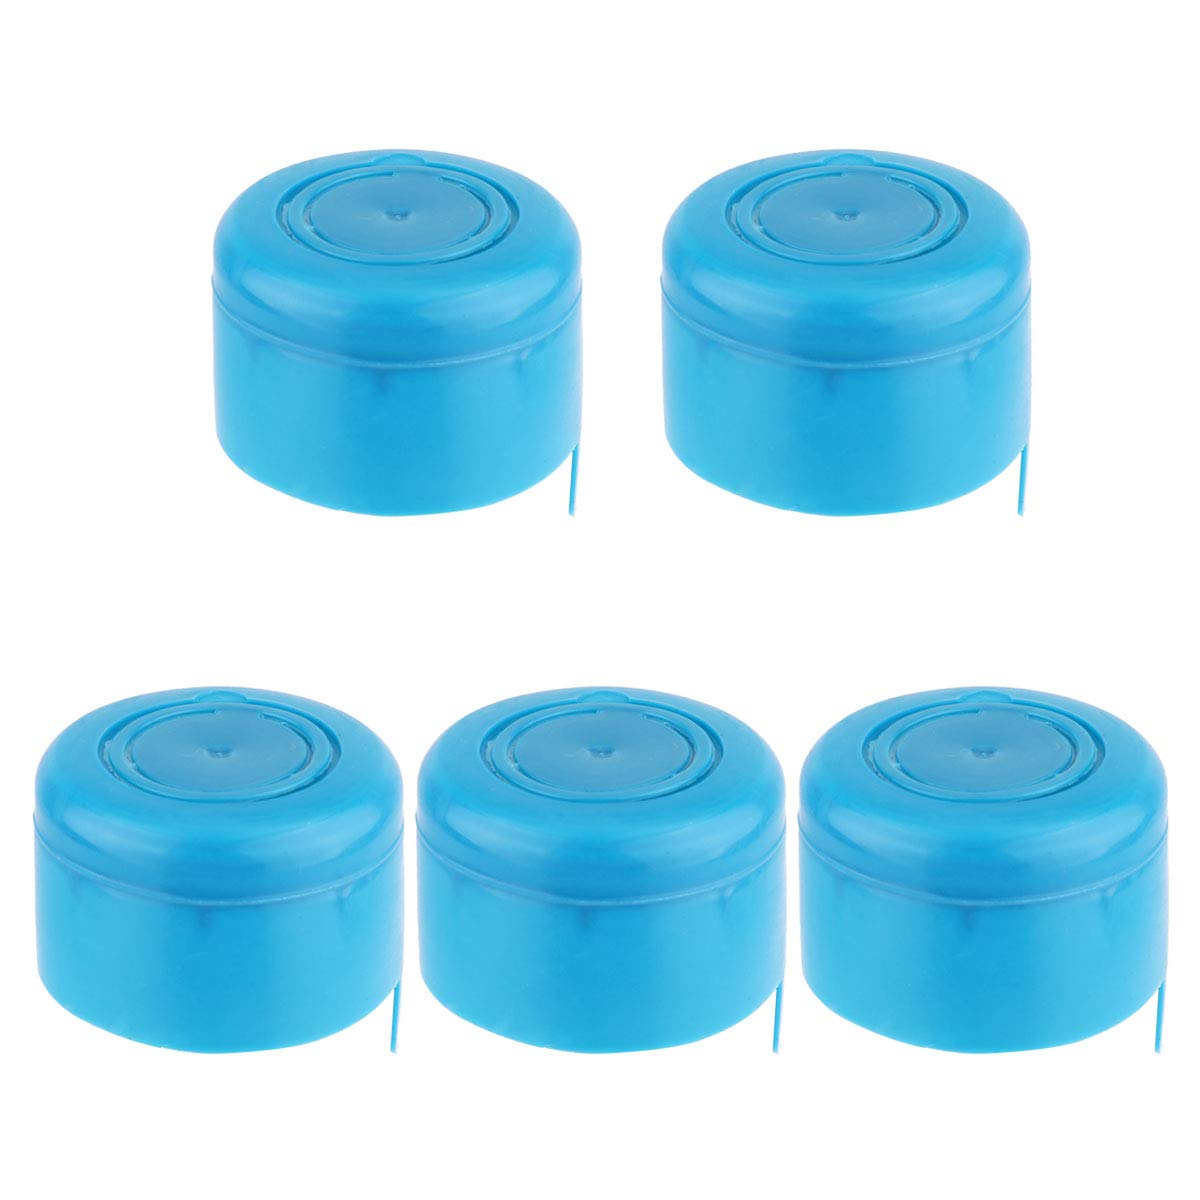 iiniim 5Pcs Reusable Non-Spill Water Bottle Snap On Caps Replacement for 55mm 3 and 5 Gallon Water Jugs, 2pcs Bottle Handle Carrier Lifter 5pcs Jug Caps One Size